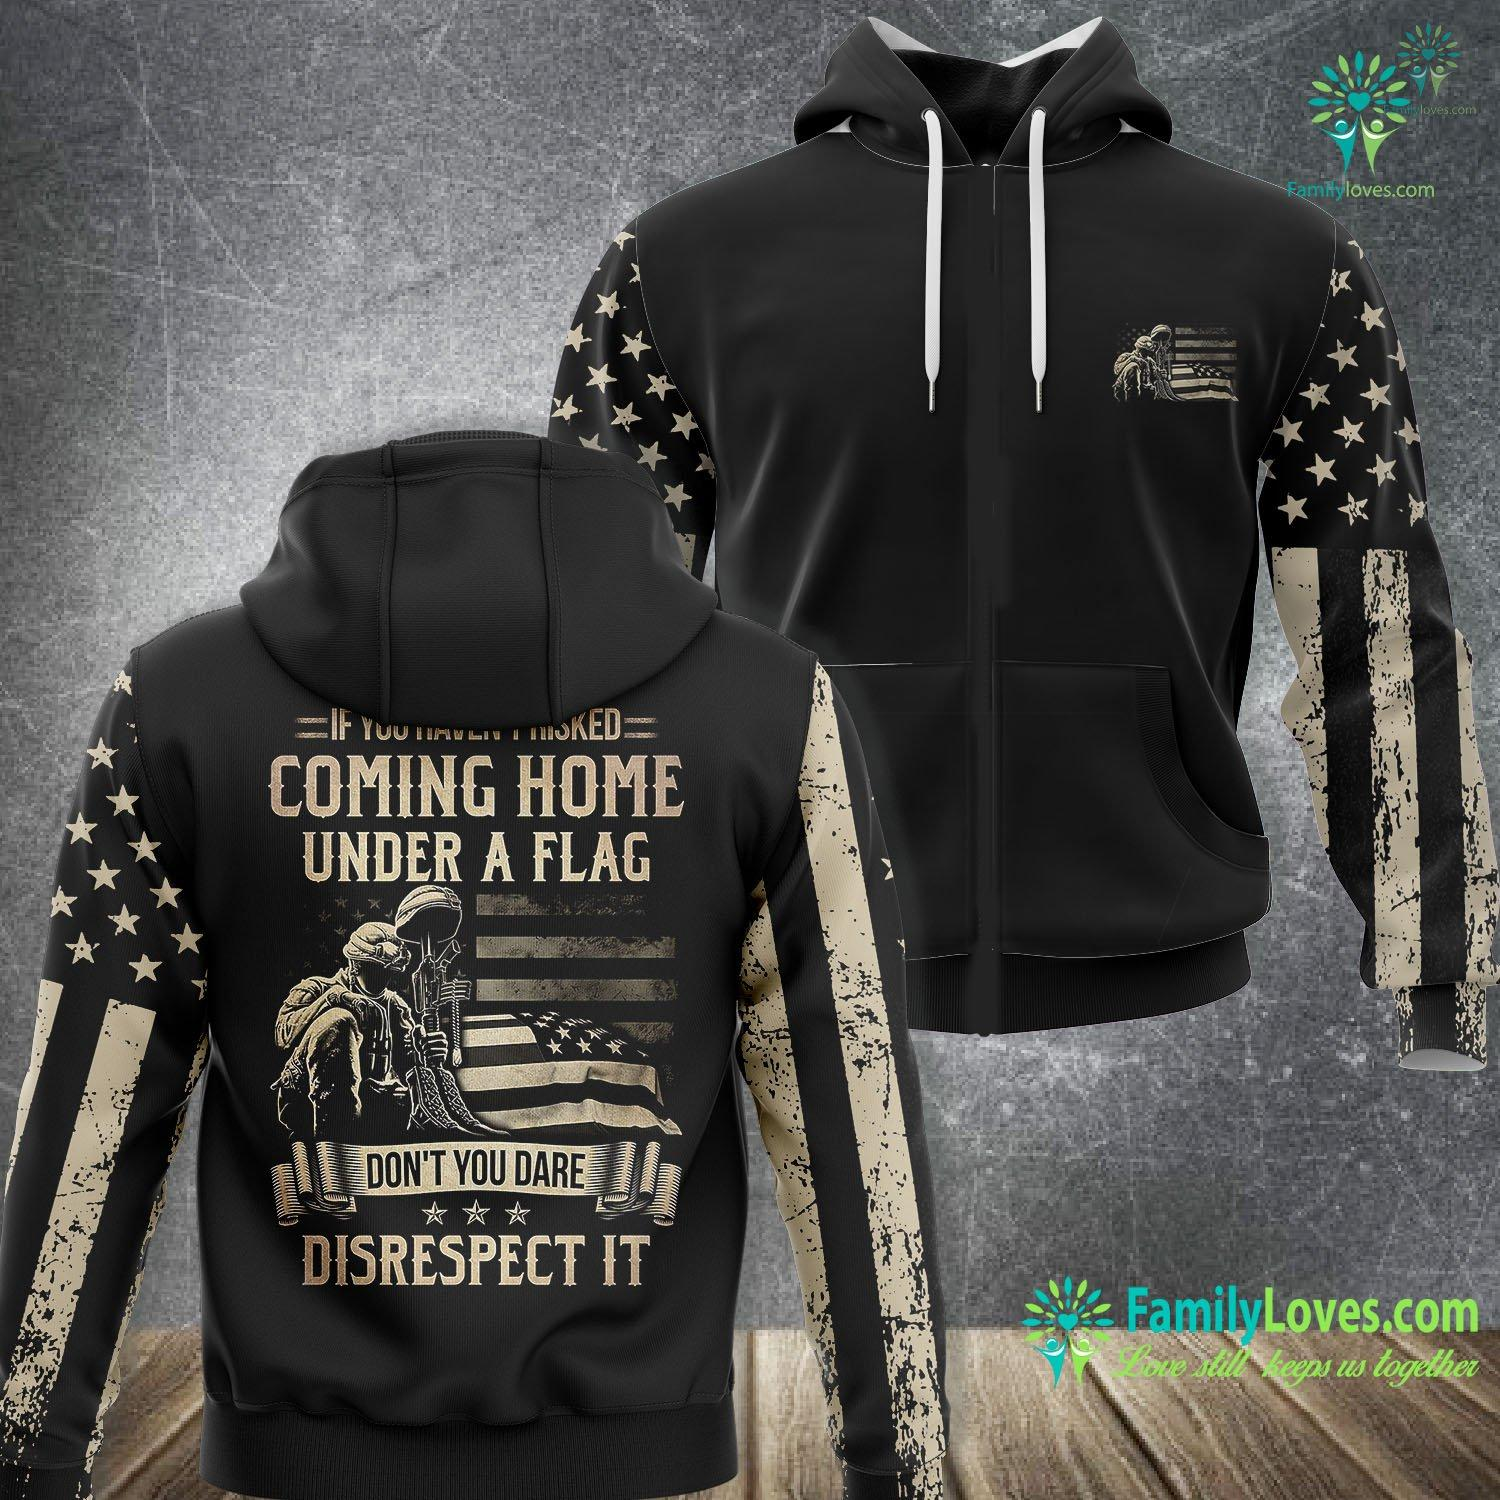 If You Haven'T Risked Coming Home Under A Flag Don'T You Dare Disrespect It 3D All Over Printed Hoodie Familyloves.com